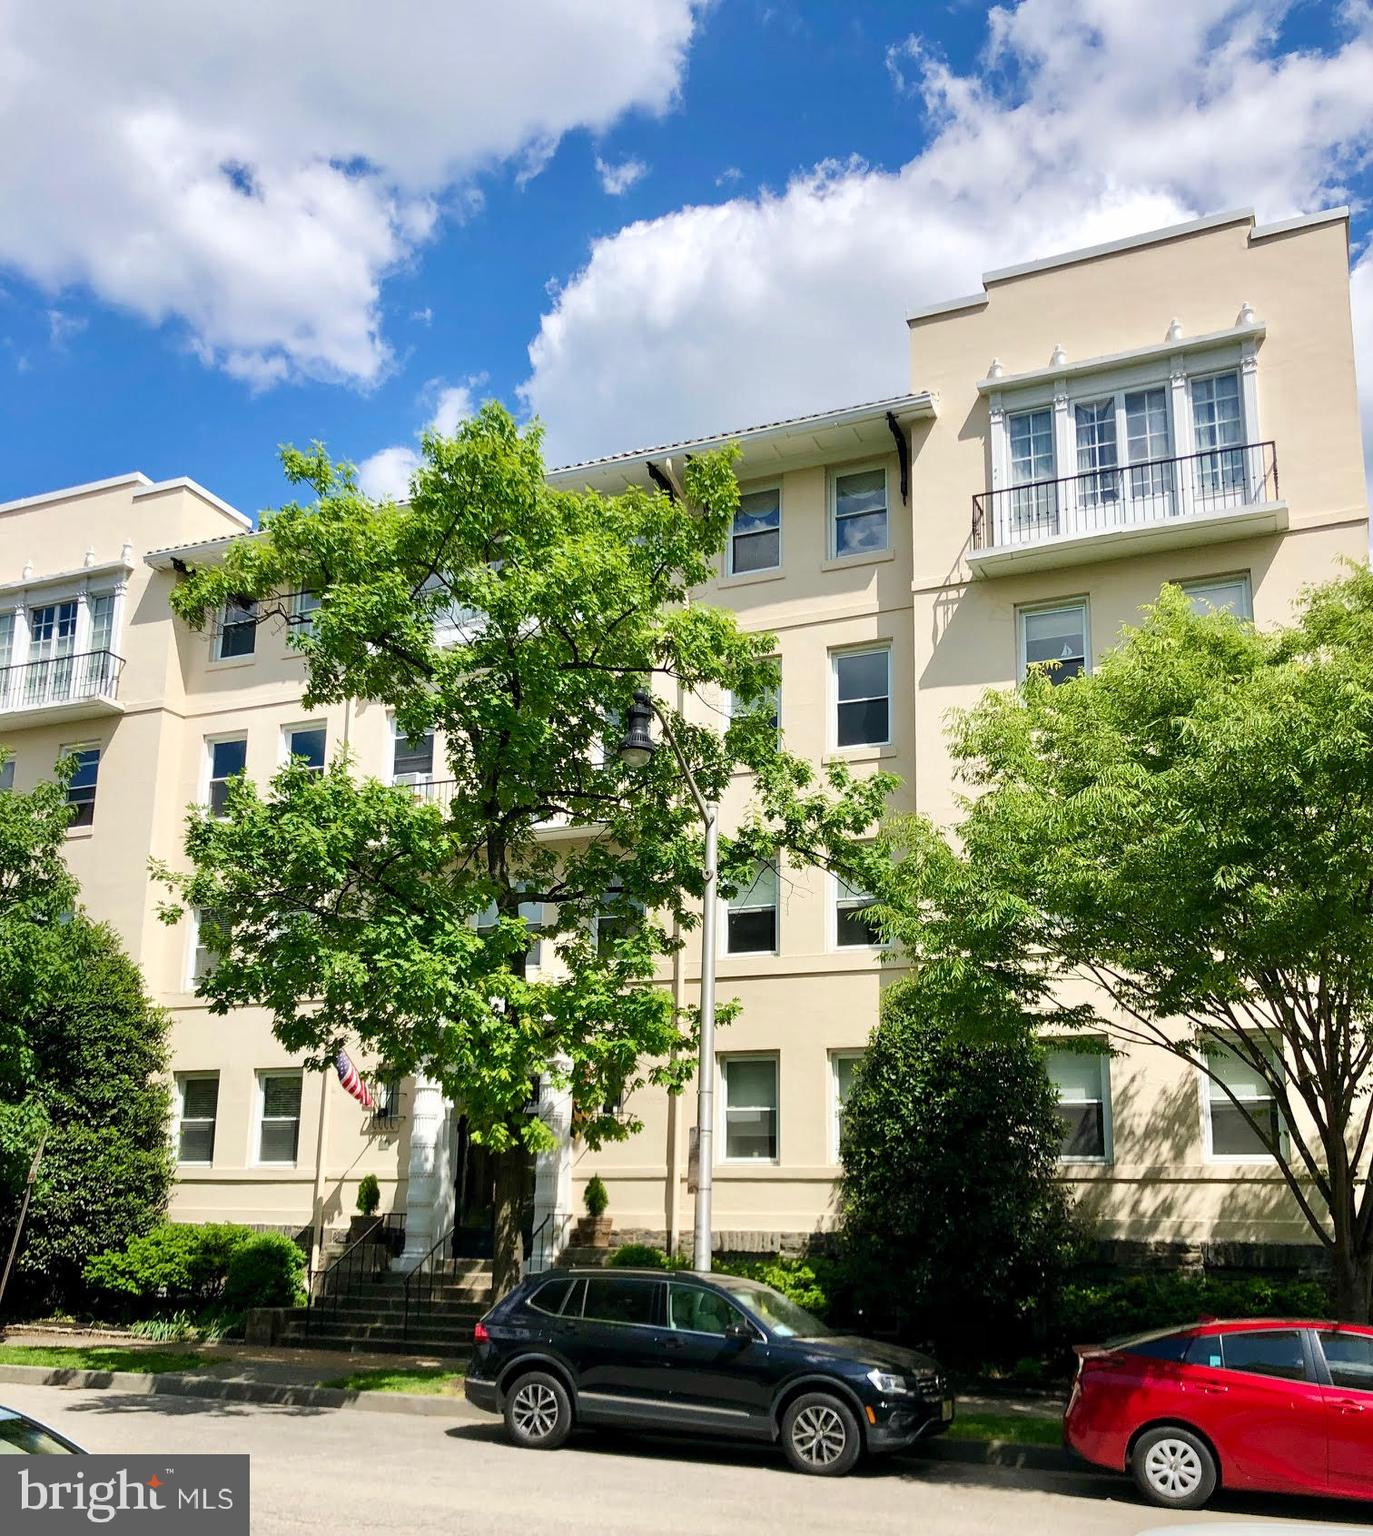 Two bedroom apartment in an ideal location, near Johns Hopkins University, shops, restaurants and more! Charming features throughout...hardwood floors, decorative fireplace, grand entrance hall.  Extra storage.....washer/dryer in unit!  On street parking is for residents only.